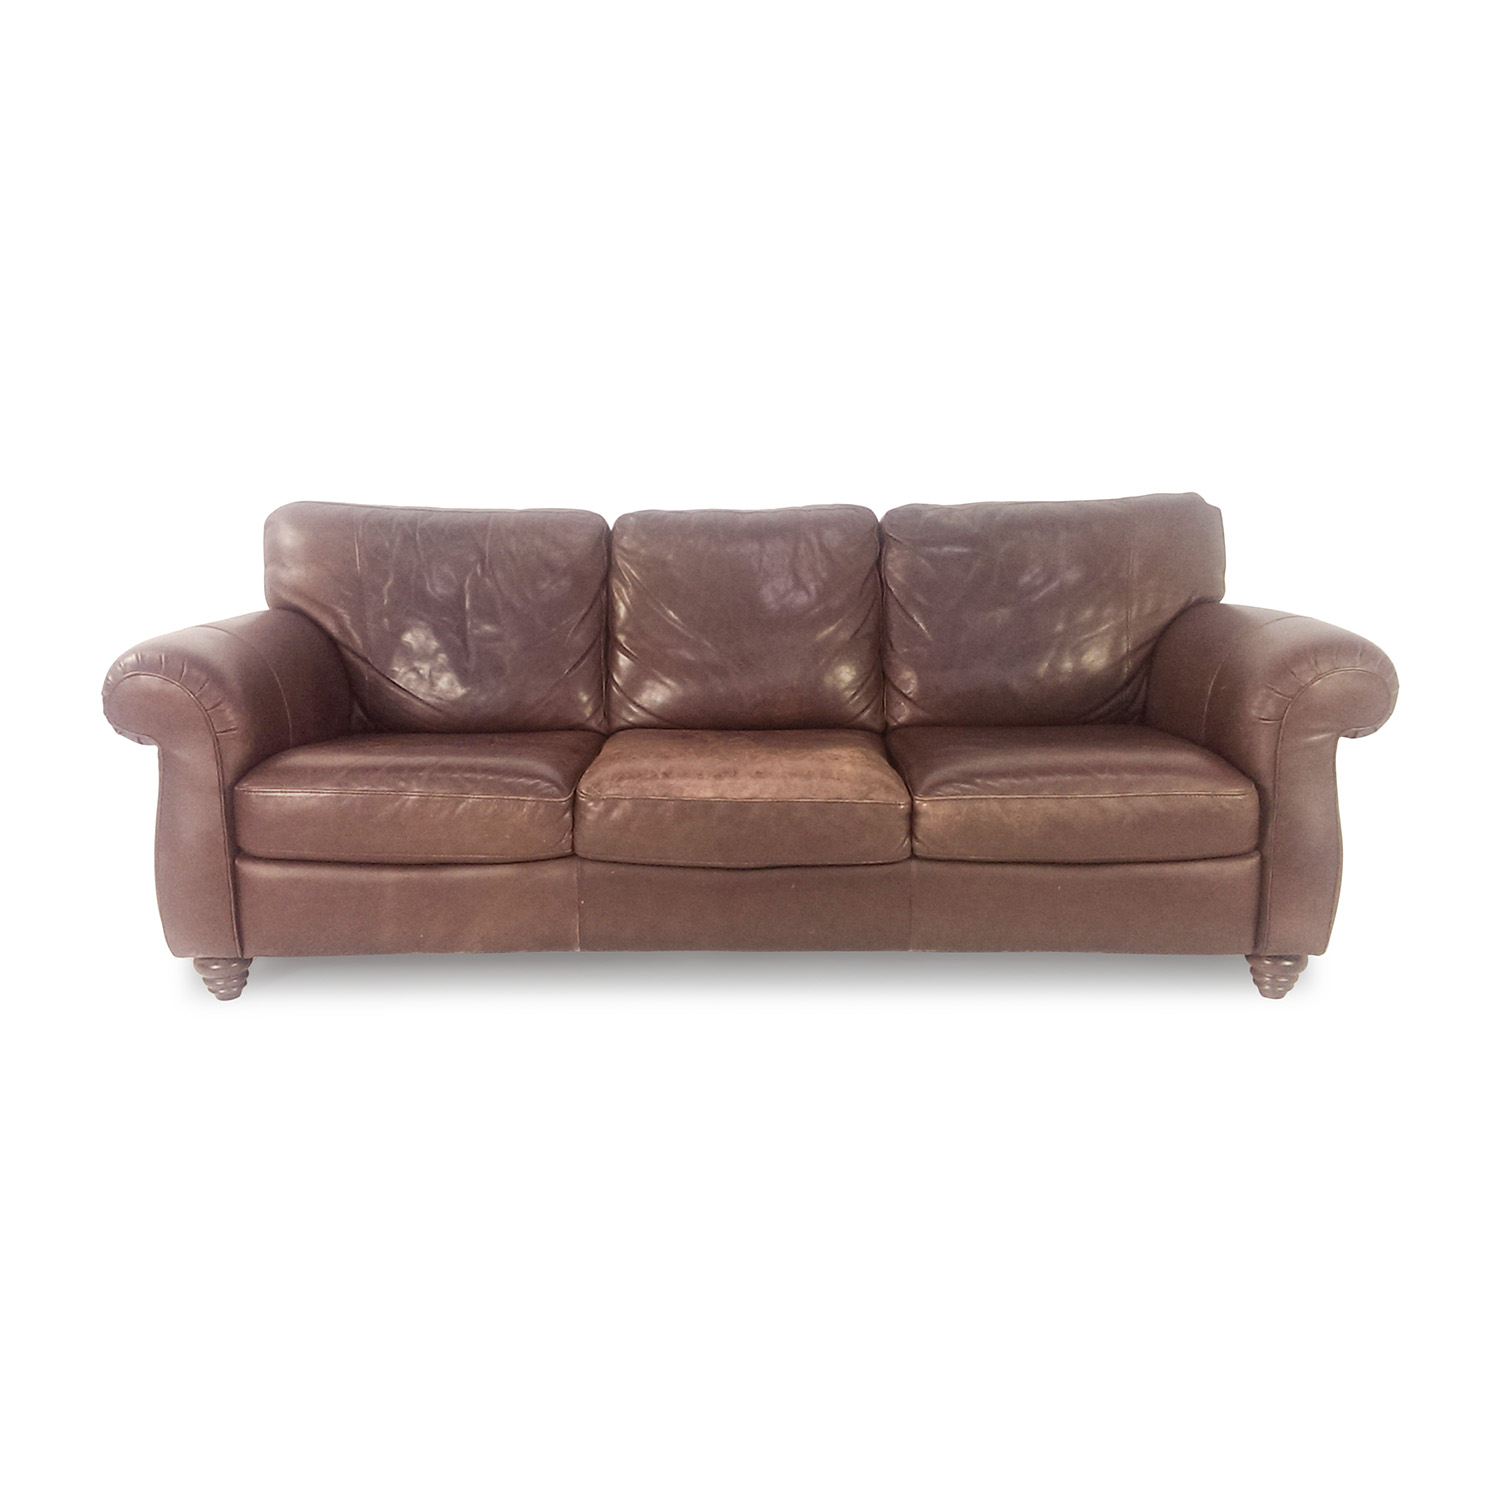 85% OFF Natuzzi Natuzzi Brown Leather Couch Sofas